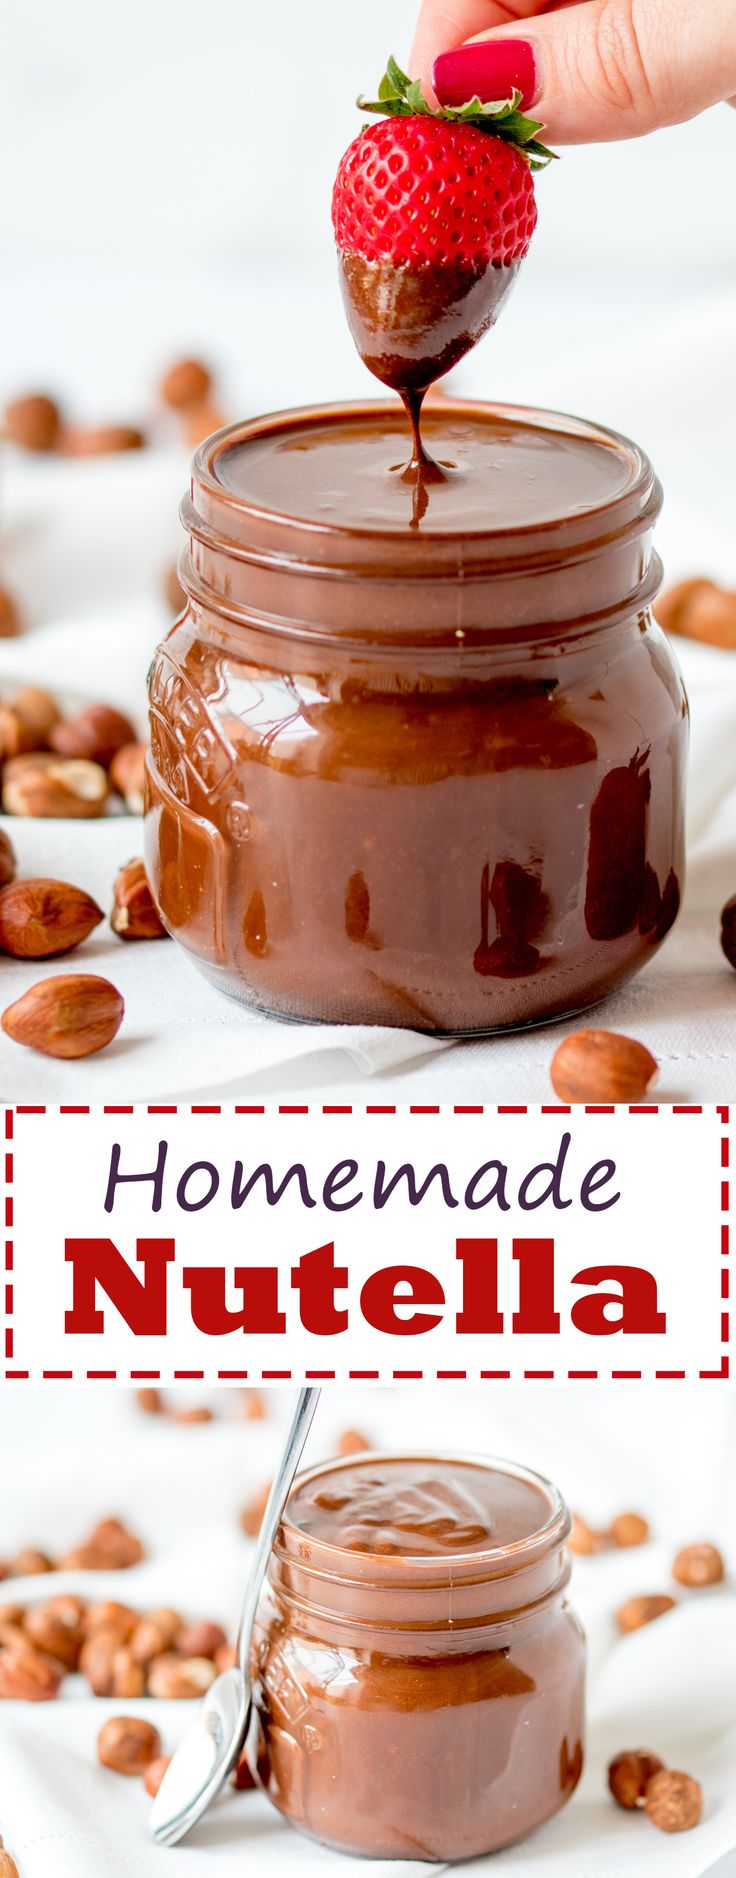 Amazing homemade Nutella made with real chocolate for a luxurious treat!